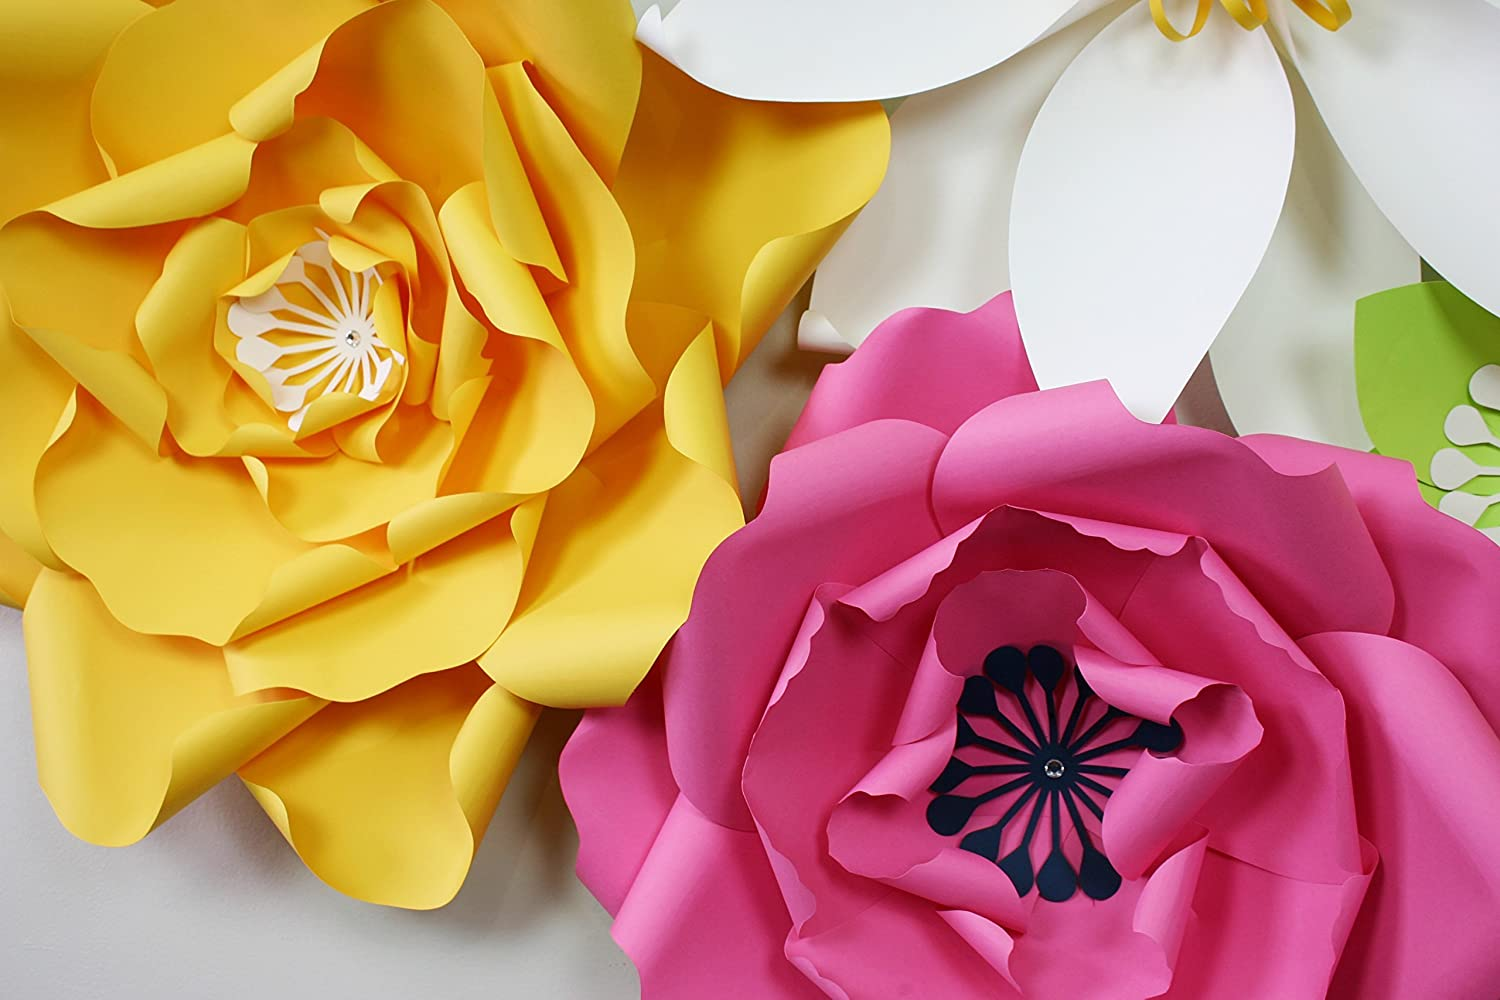 Amazon.com: Paper Flower Backdrop / Giant Paper Flowers Wall / Paper ...